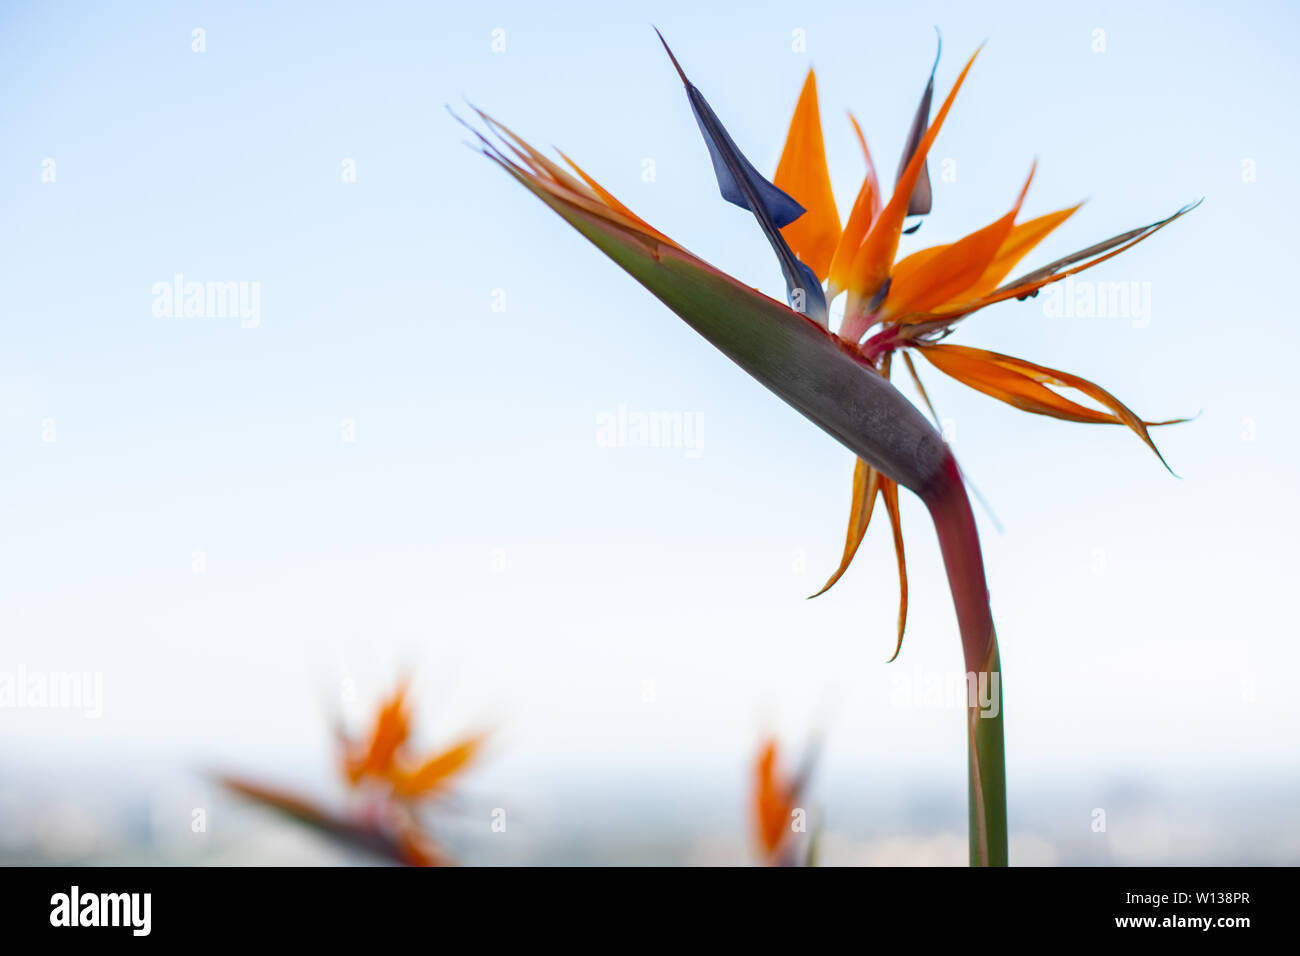 Bird-of-paradise flower, official name Strelitzia, on a cloudless blue sky. Copy space for a message. Stock Photo